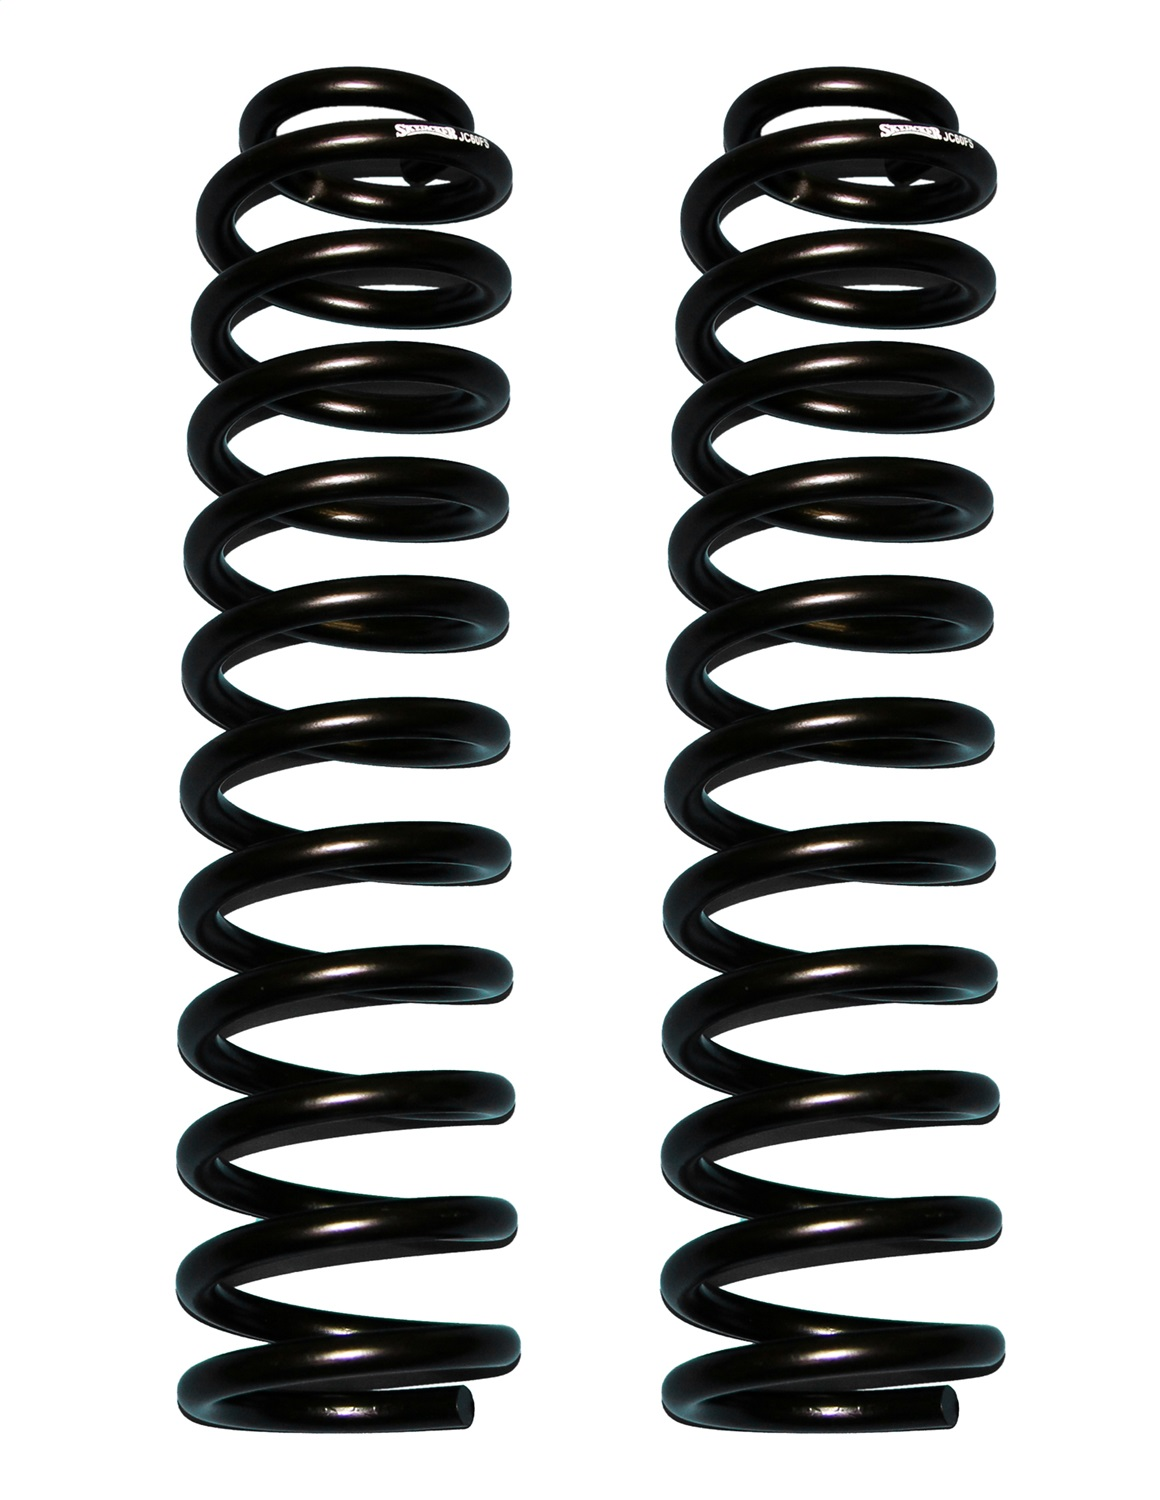 Skyjacker JC60F - Skyjacker Softride Coil Springs